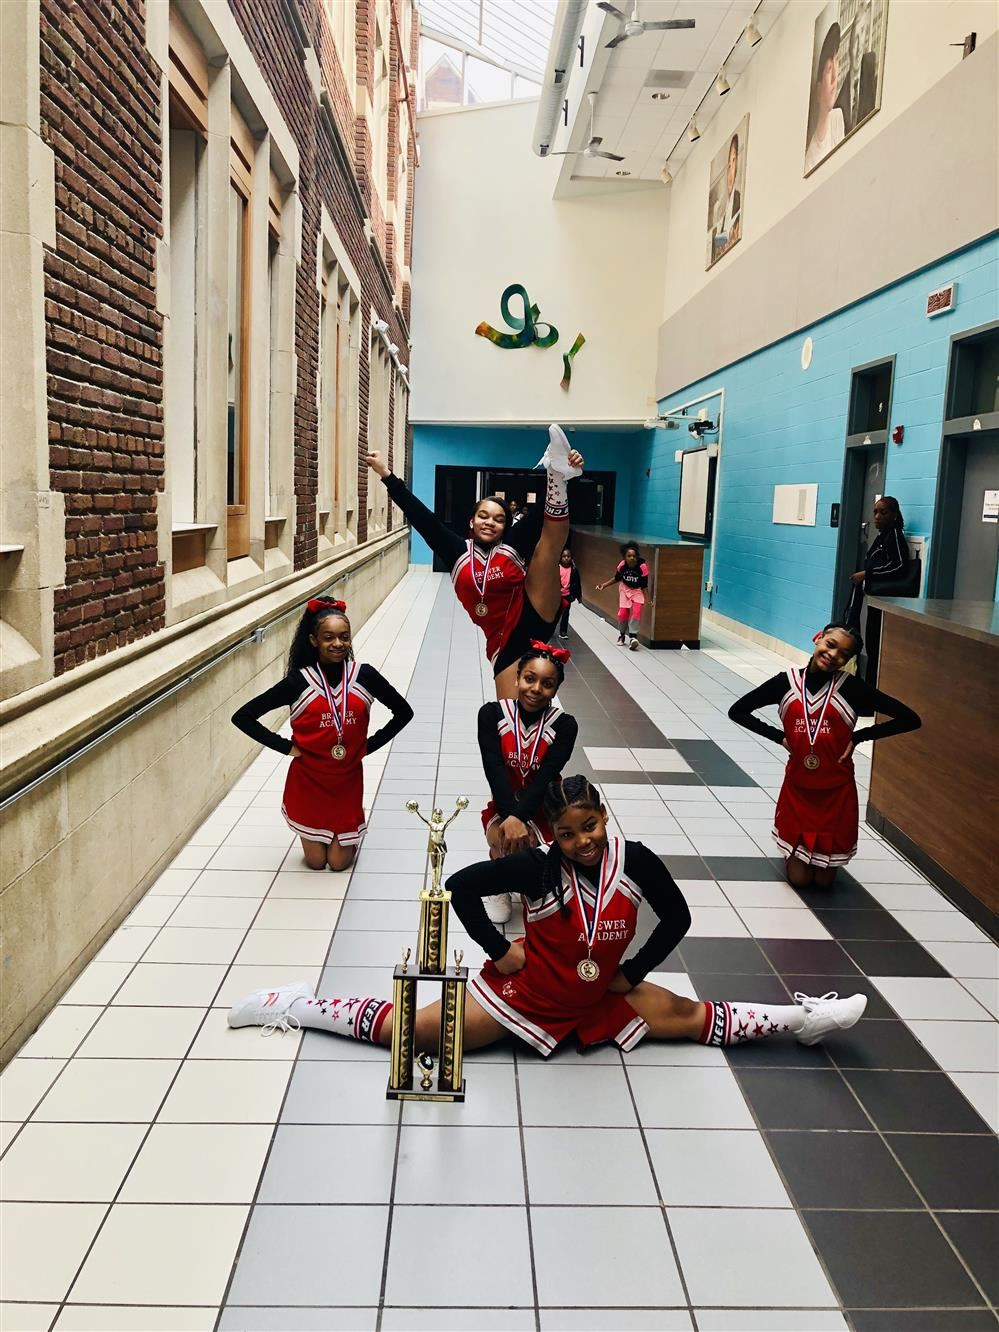 Brewer Academy's Cheerleaders Take 3rd Place at DPSCD Cheer Competition